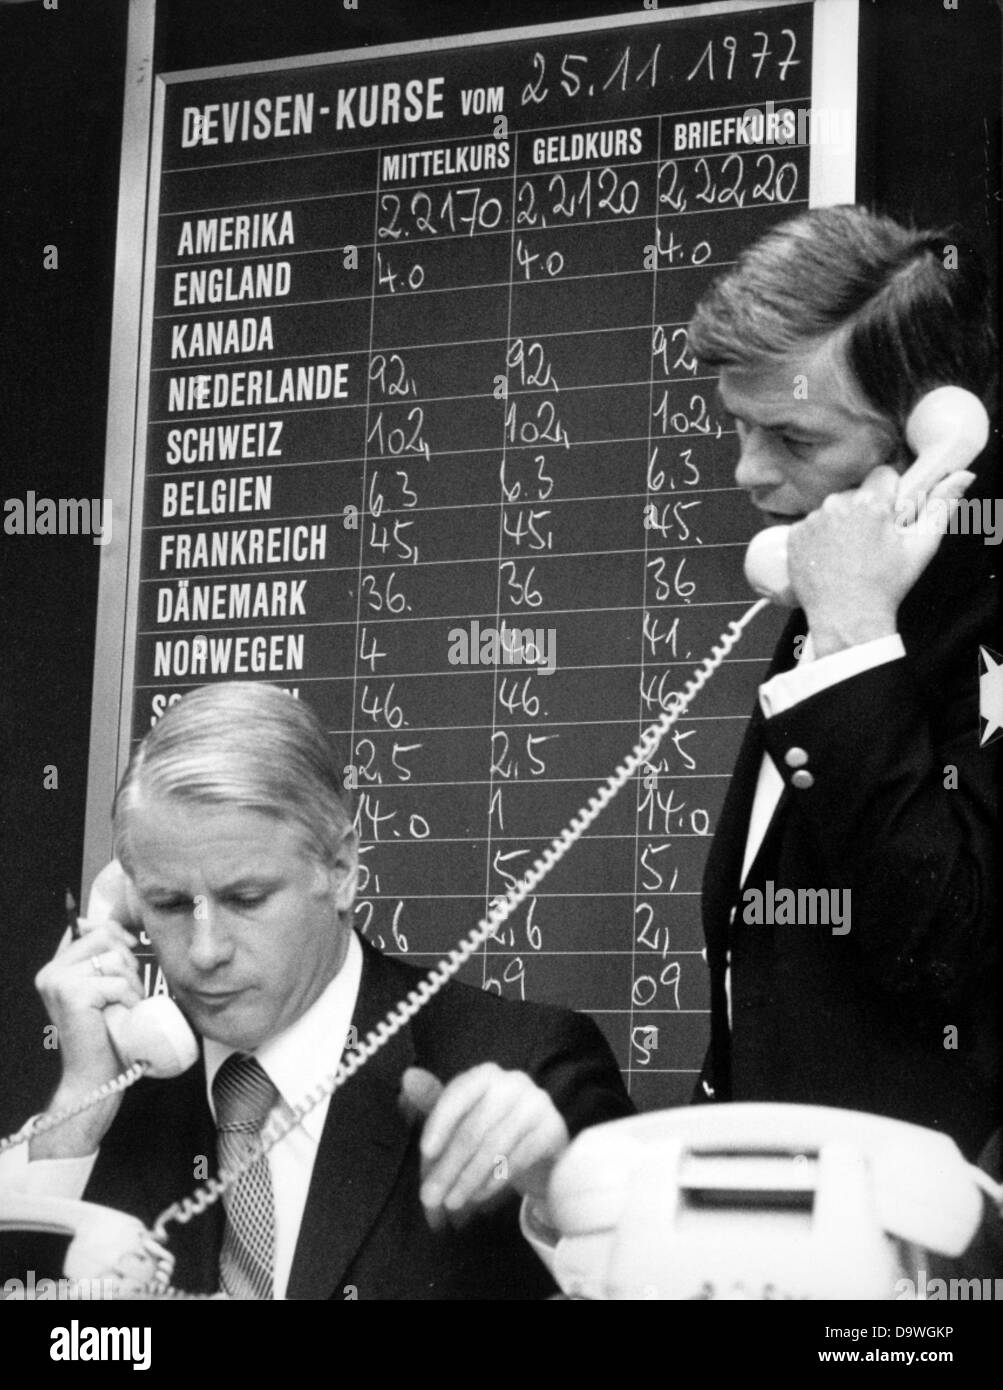 The exchange rates at the stock market of Frankfurt on the 25th of November in 1977. Stock Photo